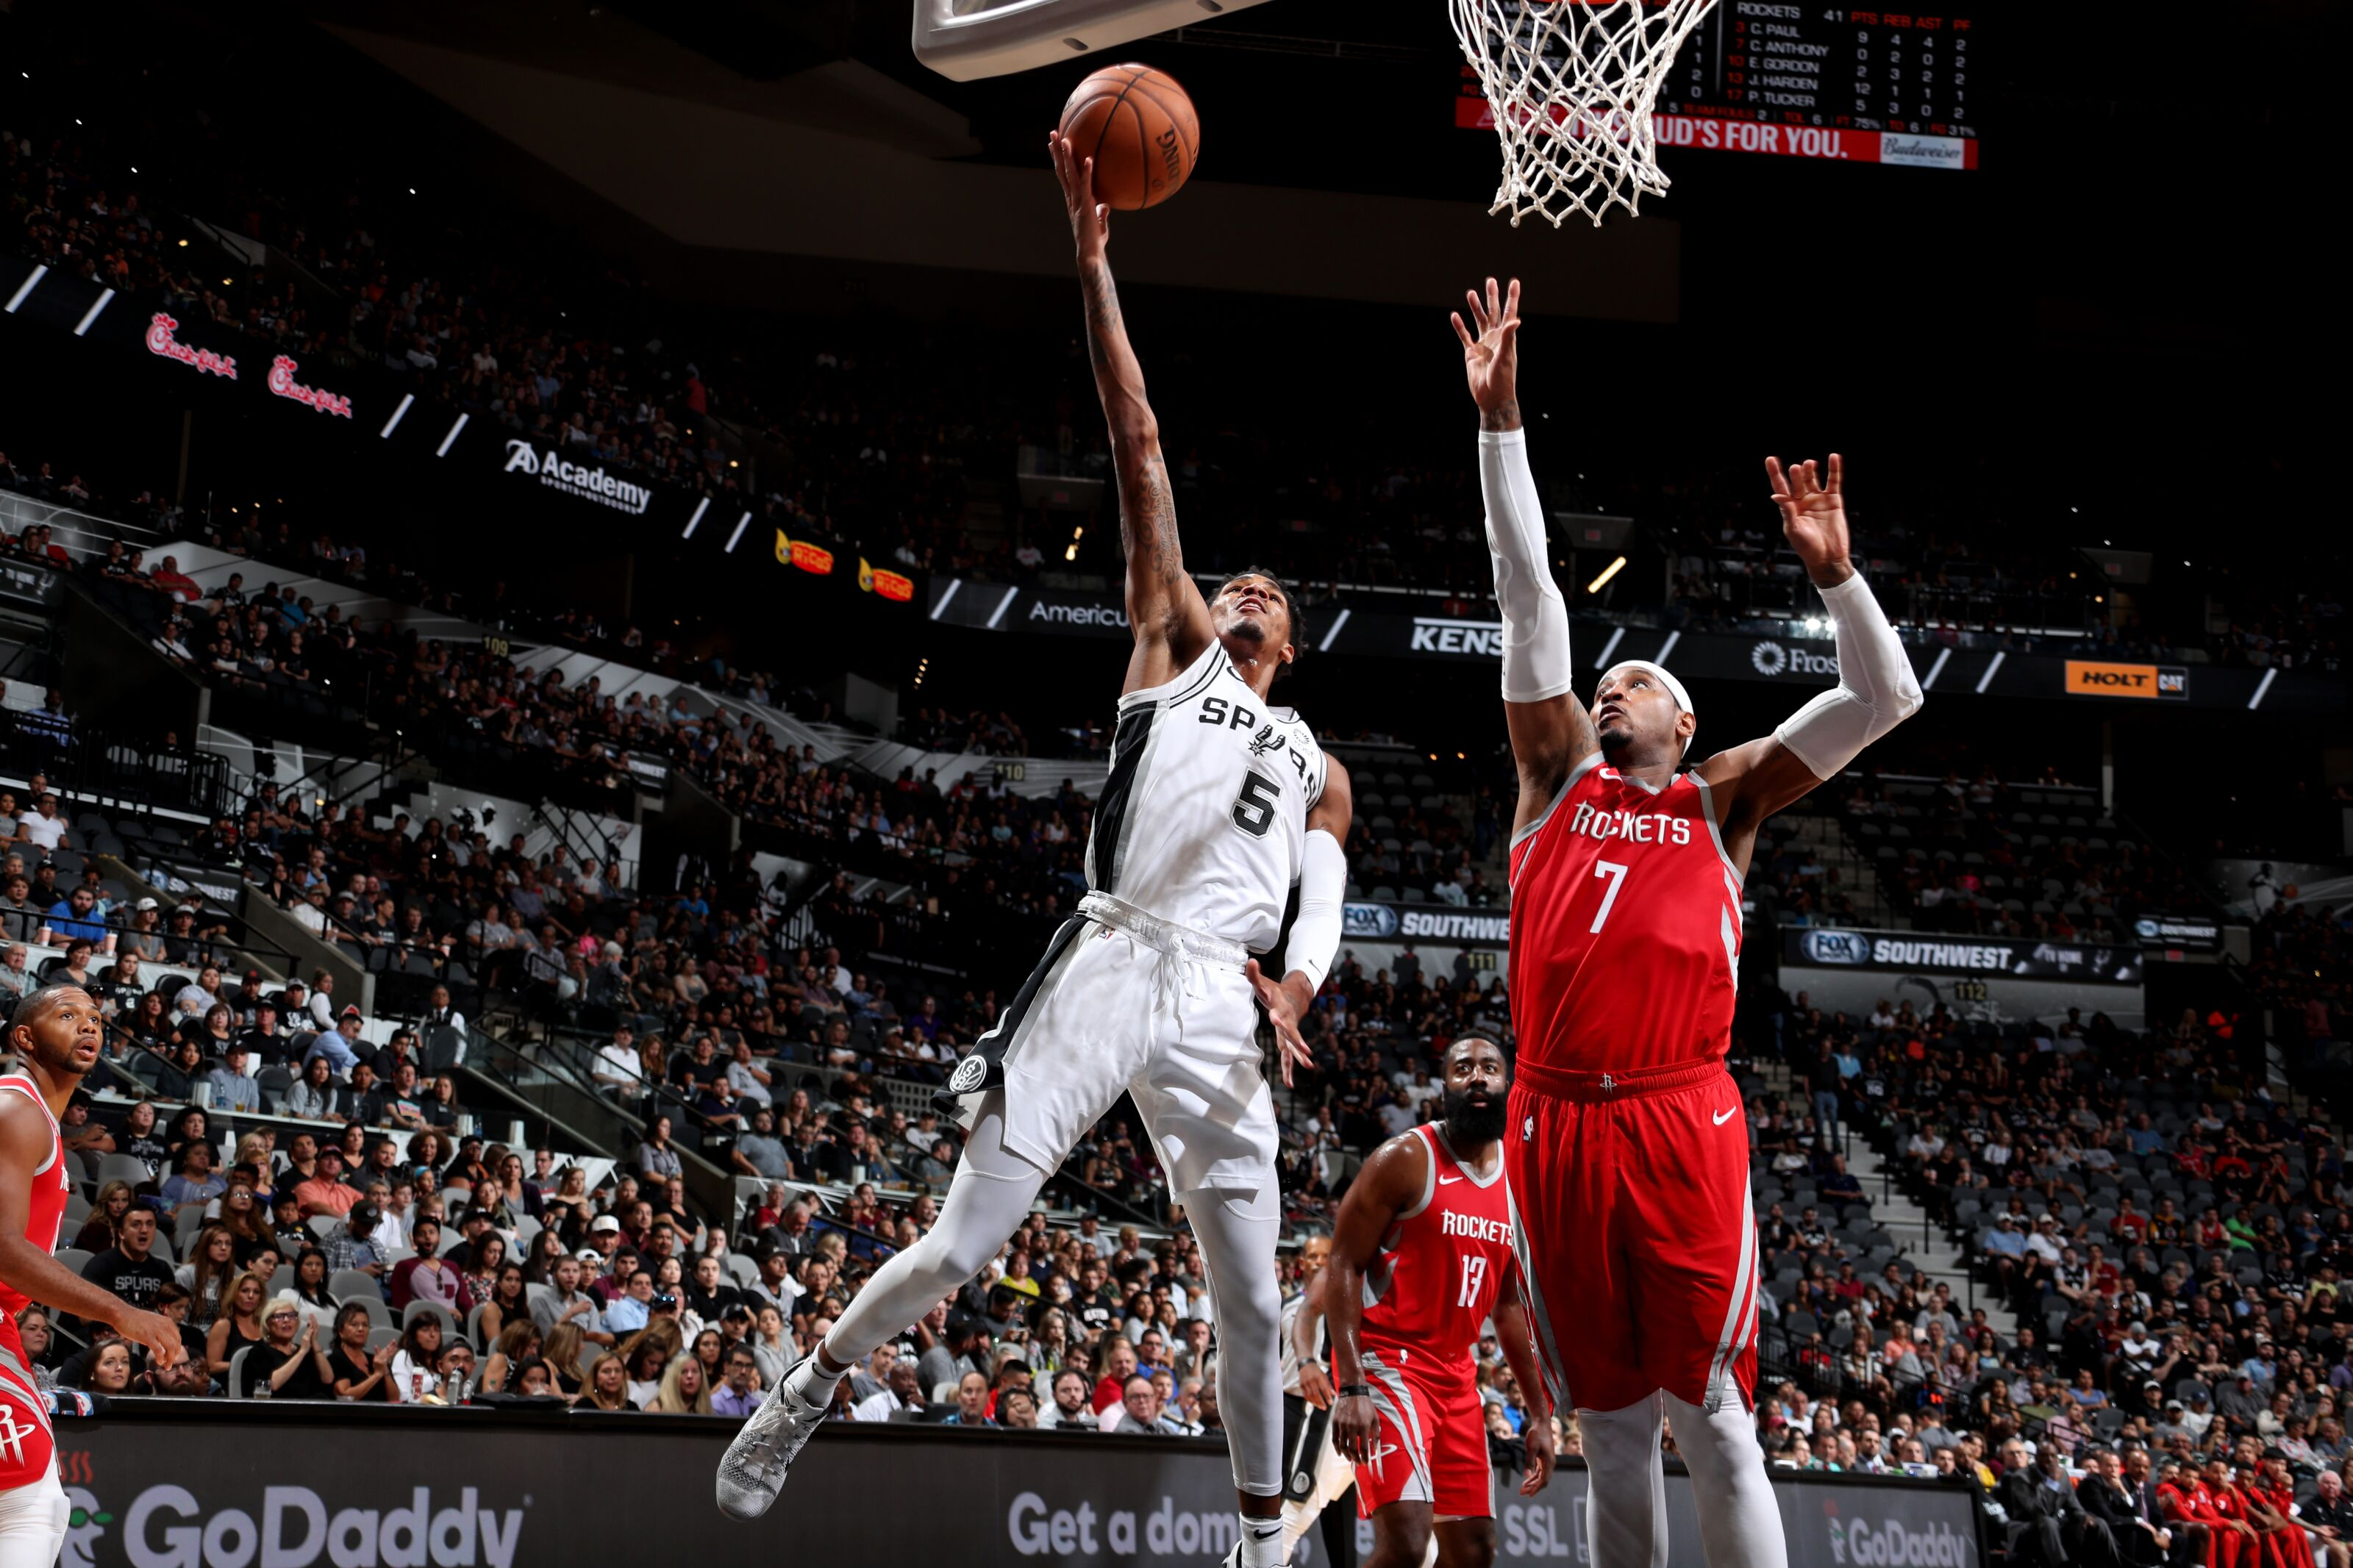 Raptors News: Toronto Raptors: Weekly NBA News Including Dejounte Murray